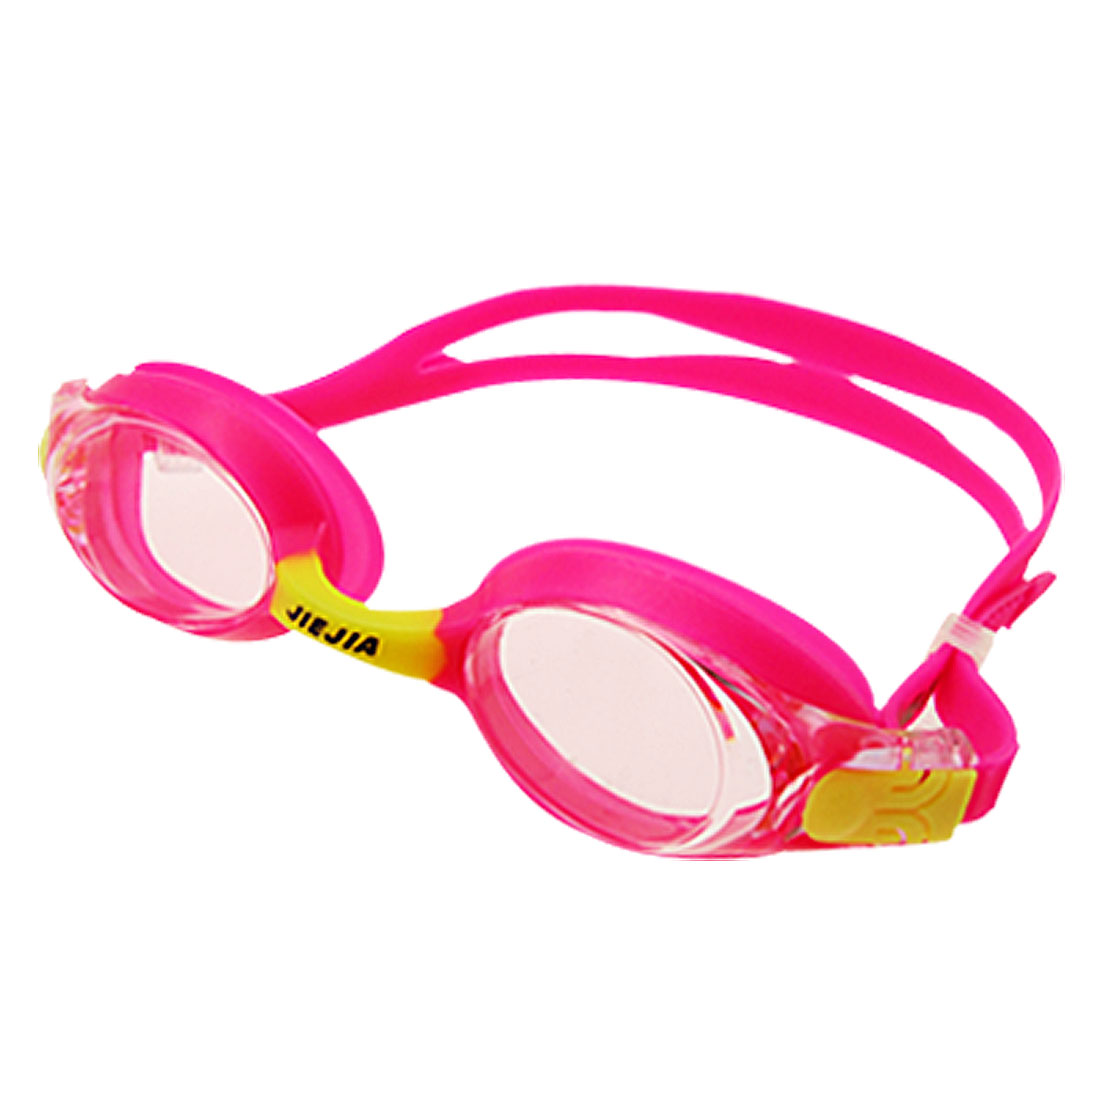 Sports Pink and Yellow Kids Swimming Pool Swim Goggles Anti Fog